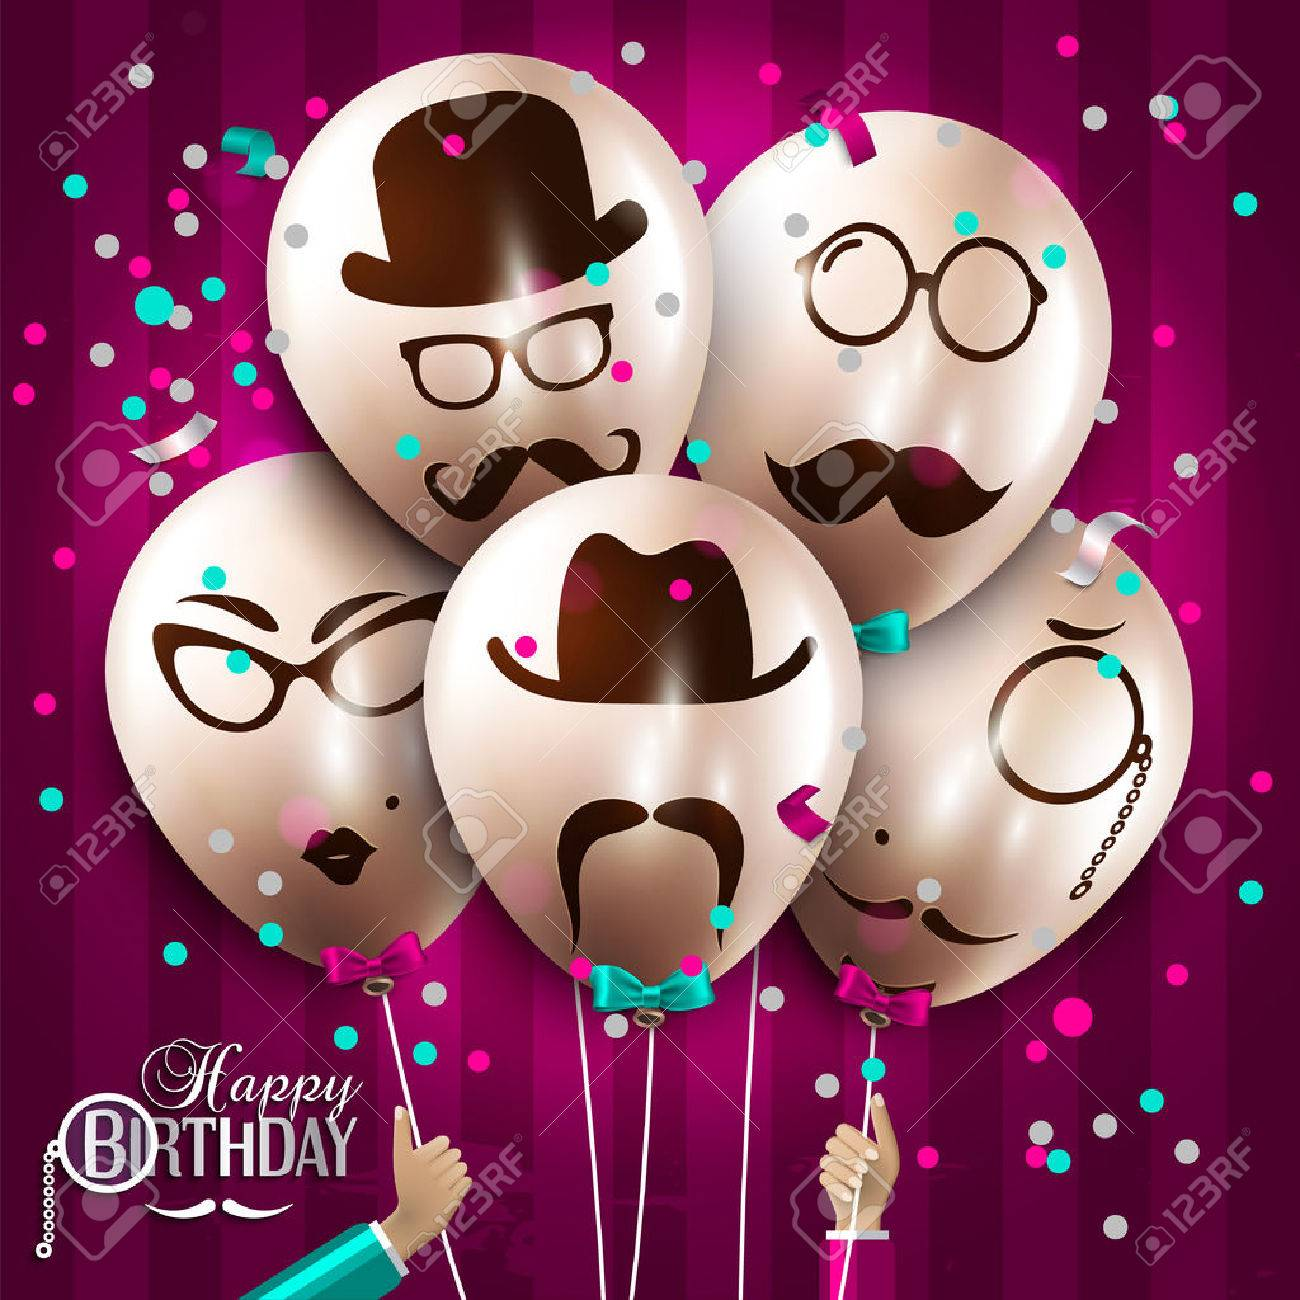 Vector birthday card. Balloons with silhouettes on hipster style. Mustaches. - 39373660